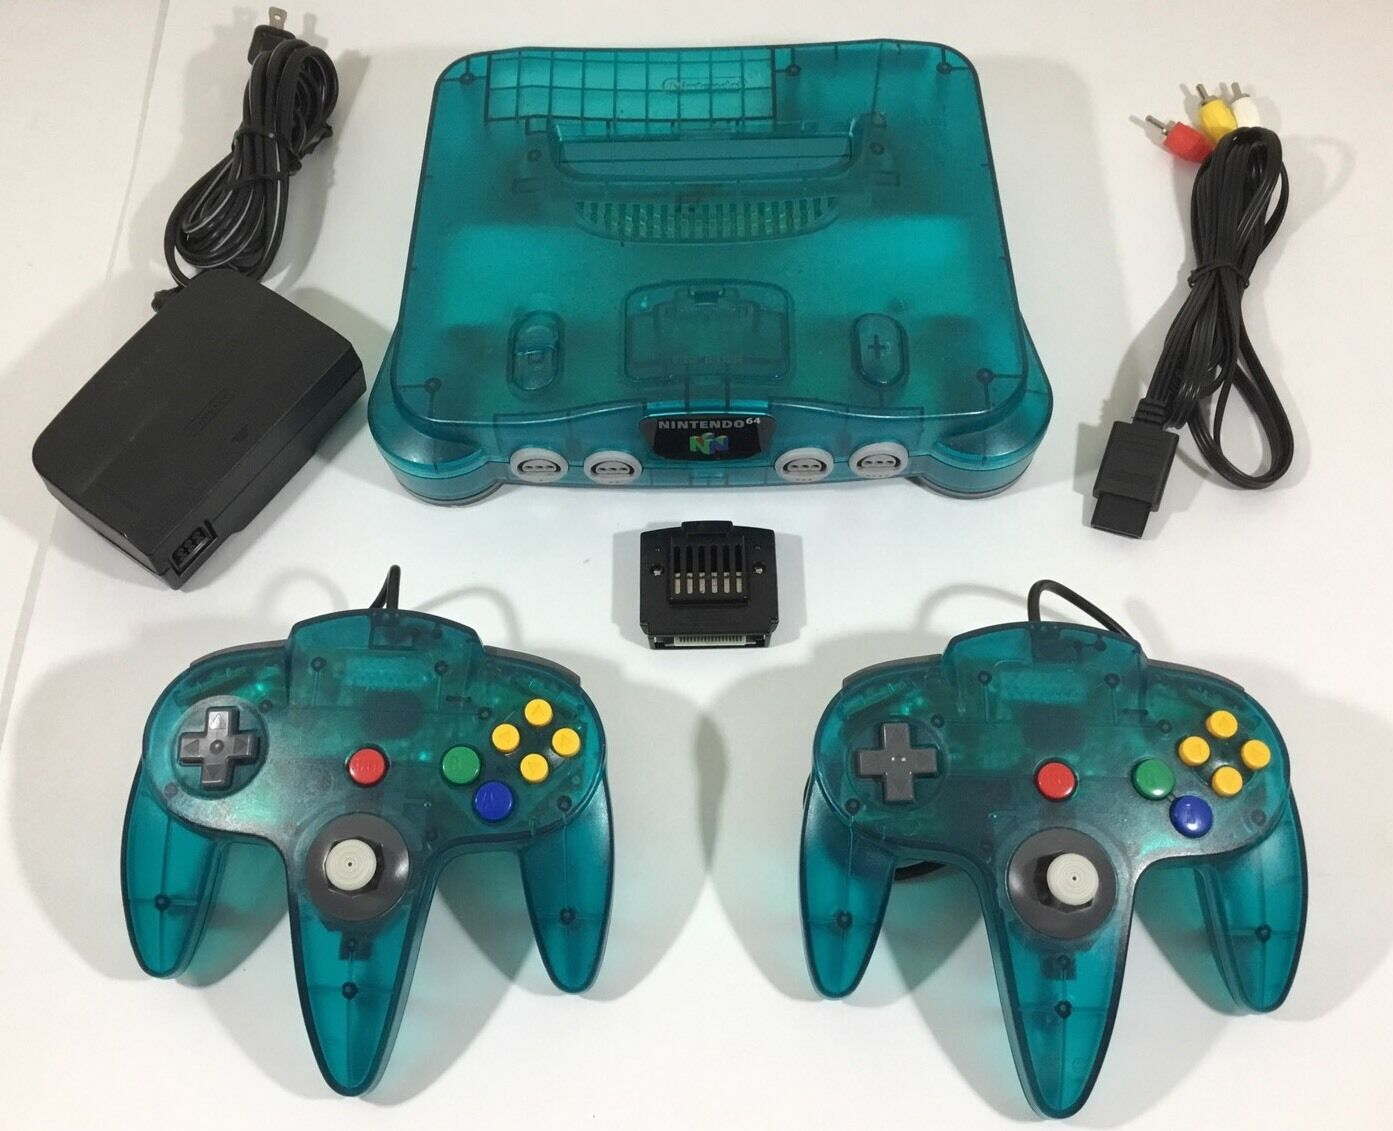 ICE BLUE Teal Nintendo 64 N64 System Console Bundle + 2 NEW ...